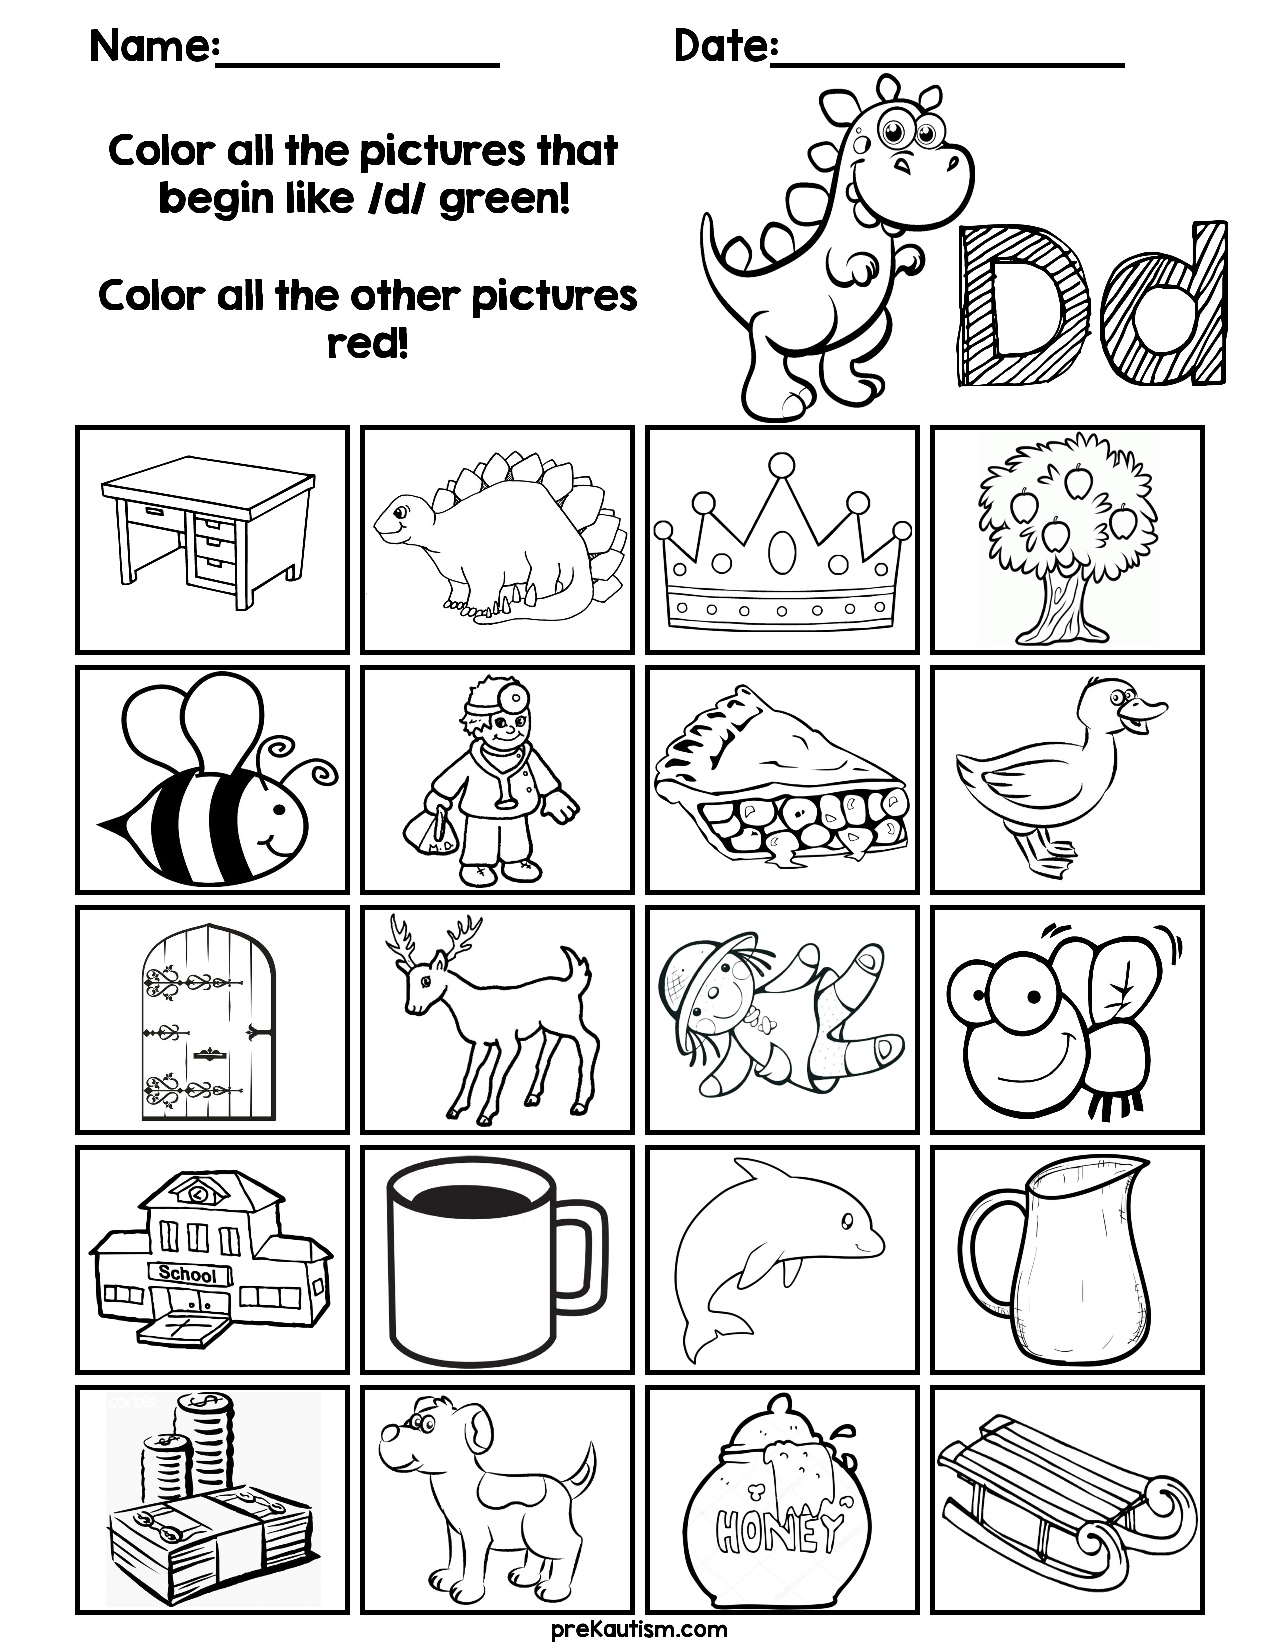 Find Amp Color Consonants Worksheets With Images